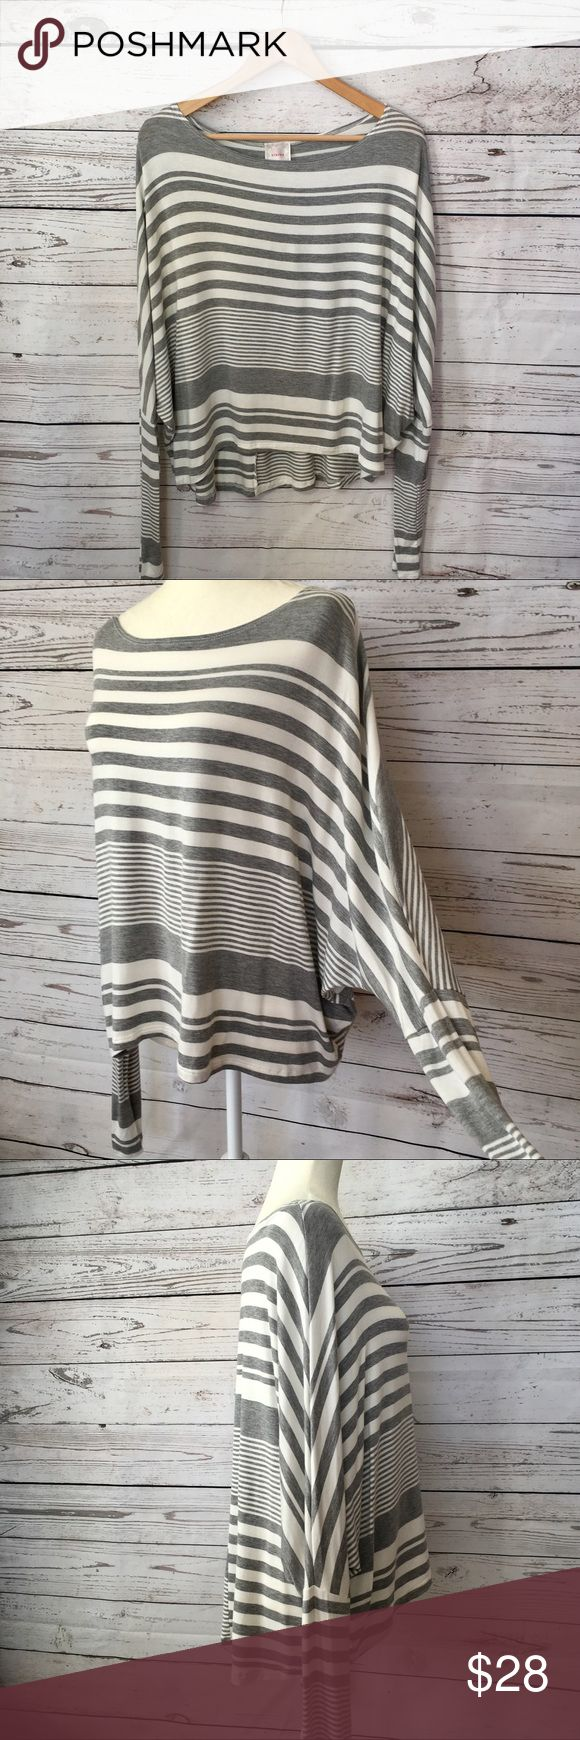 NEW Striped gray and white Dolman sleeve hi lo top •Details• Draping loose fit long dolman / batwing sleeve  striped top.  High low hem •Condition• New without tags •Material•95% rayon 5% spandex t-shirt type material •Color• Gray and white All measurements taken while item is laying flat & are approximate •Armpit to Armpit•  •Length•.                                        •Sleeve length• NYMPHE Tops